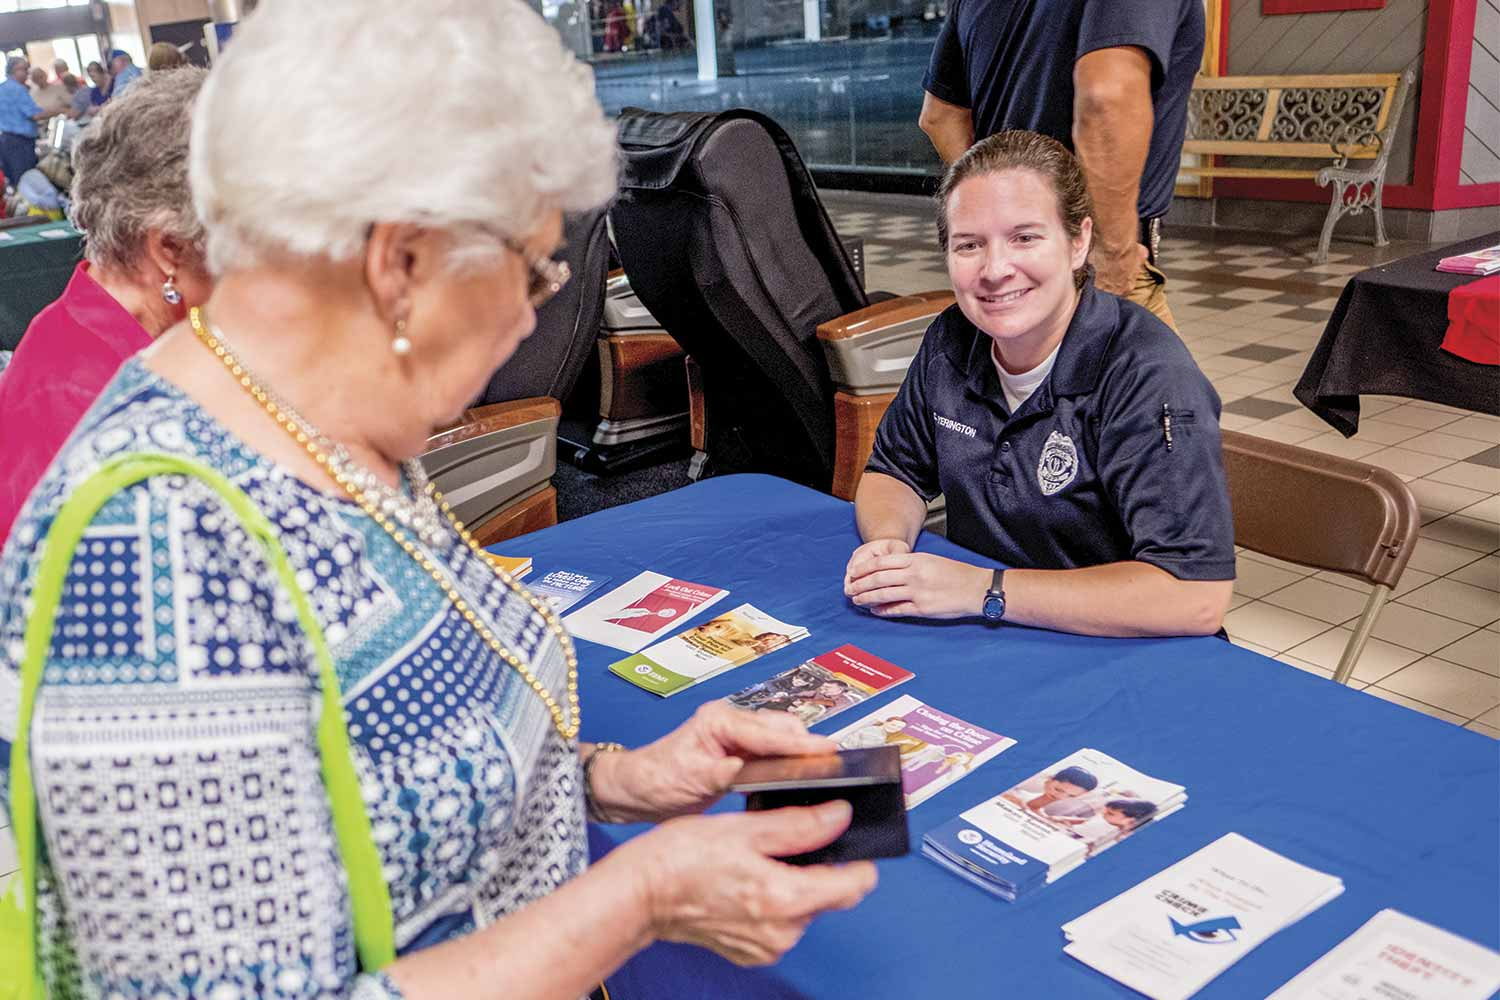 Owensboro Police Sgt. Courtney Yerington, who leads the department's Crime Prevention Unit, shared resources with citizens during a recent Senior Day Out event at Towne Square Mall. (Photo by Jim Robertson)